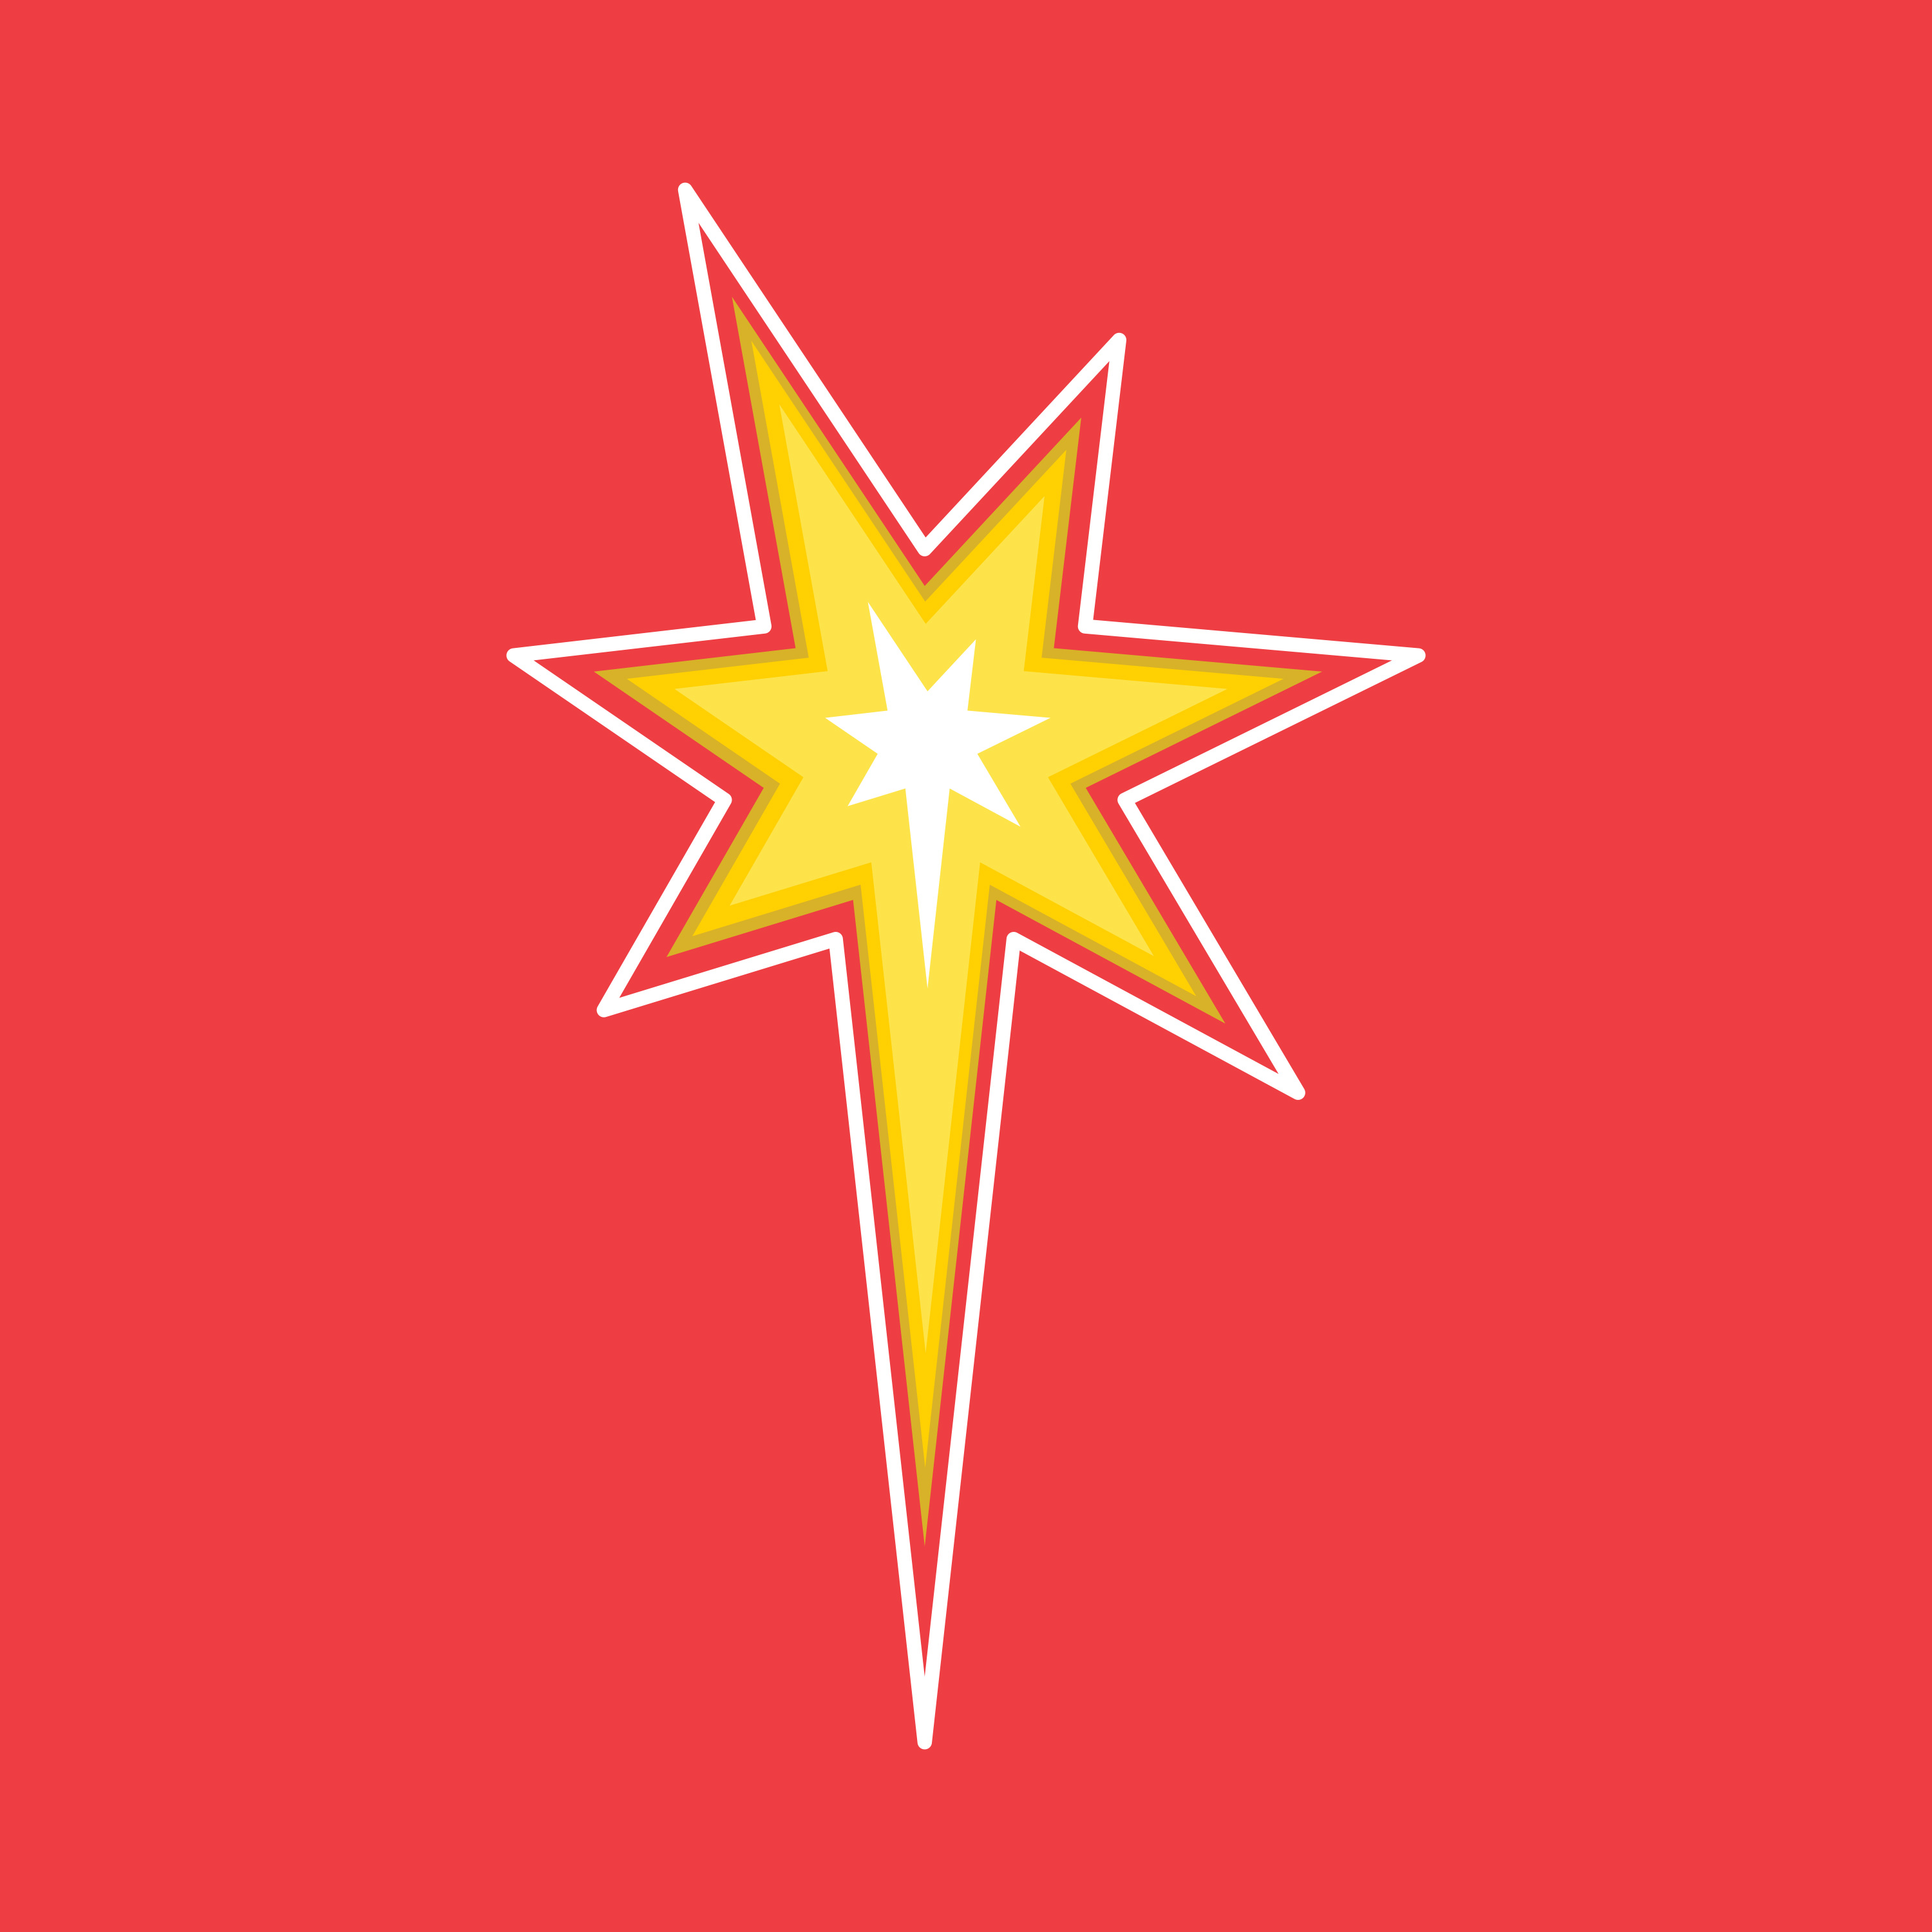 Star detail from Comic Con logo